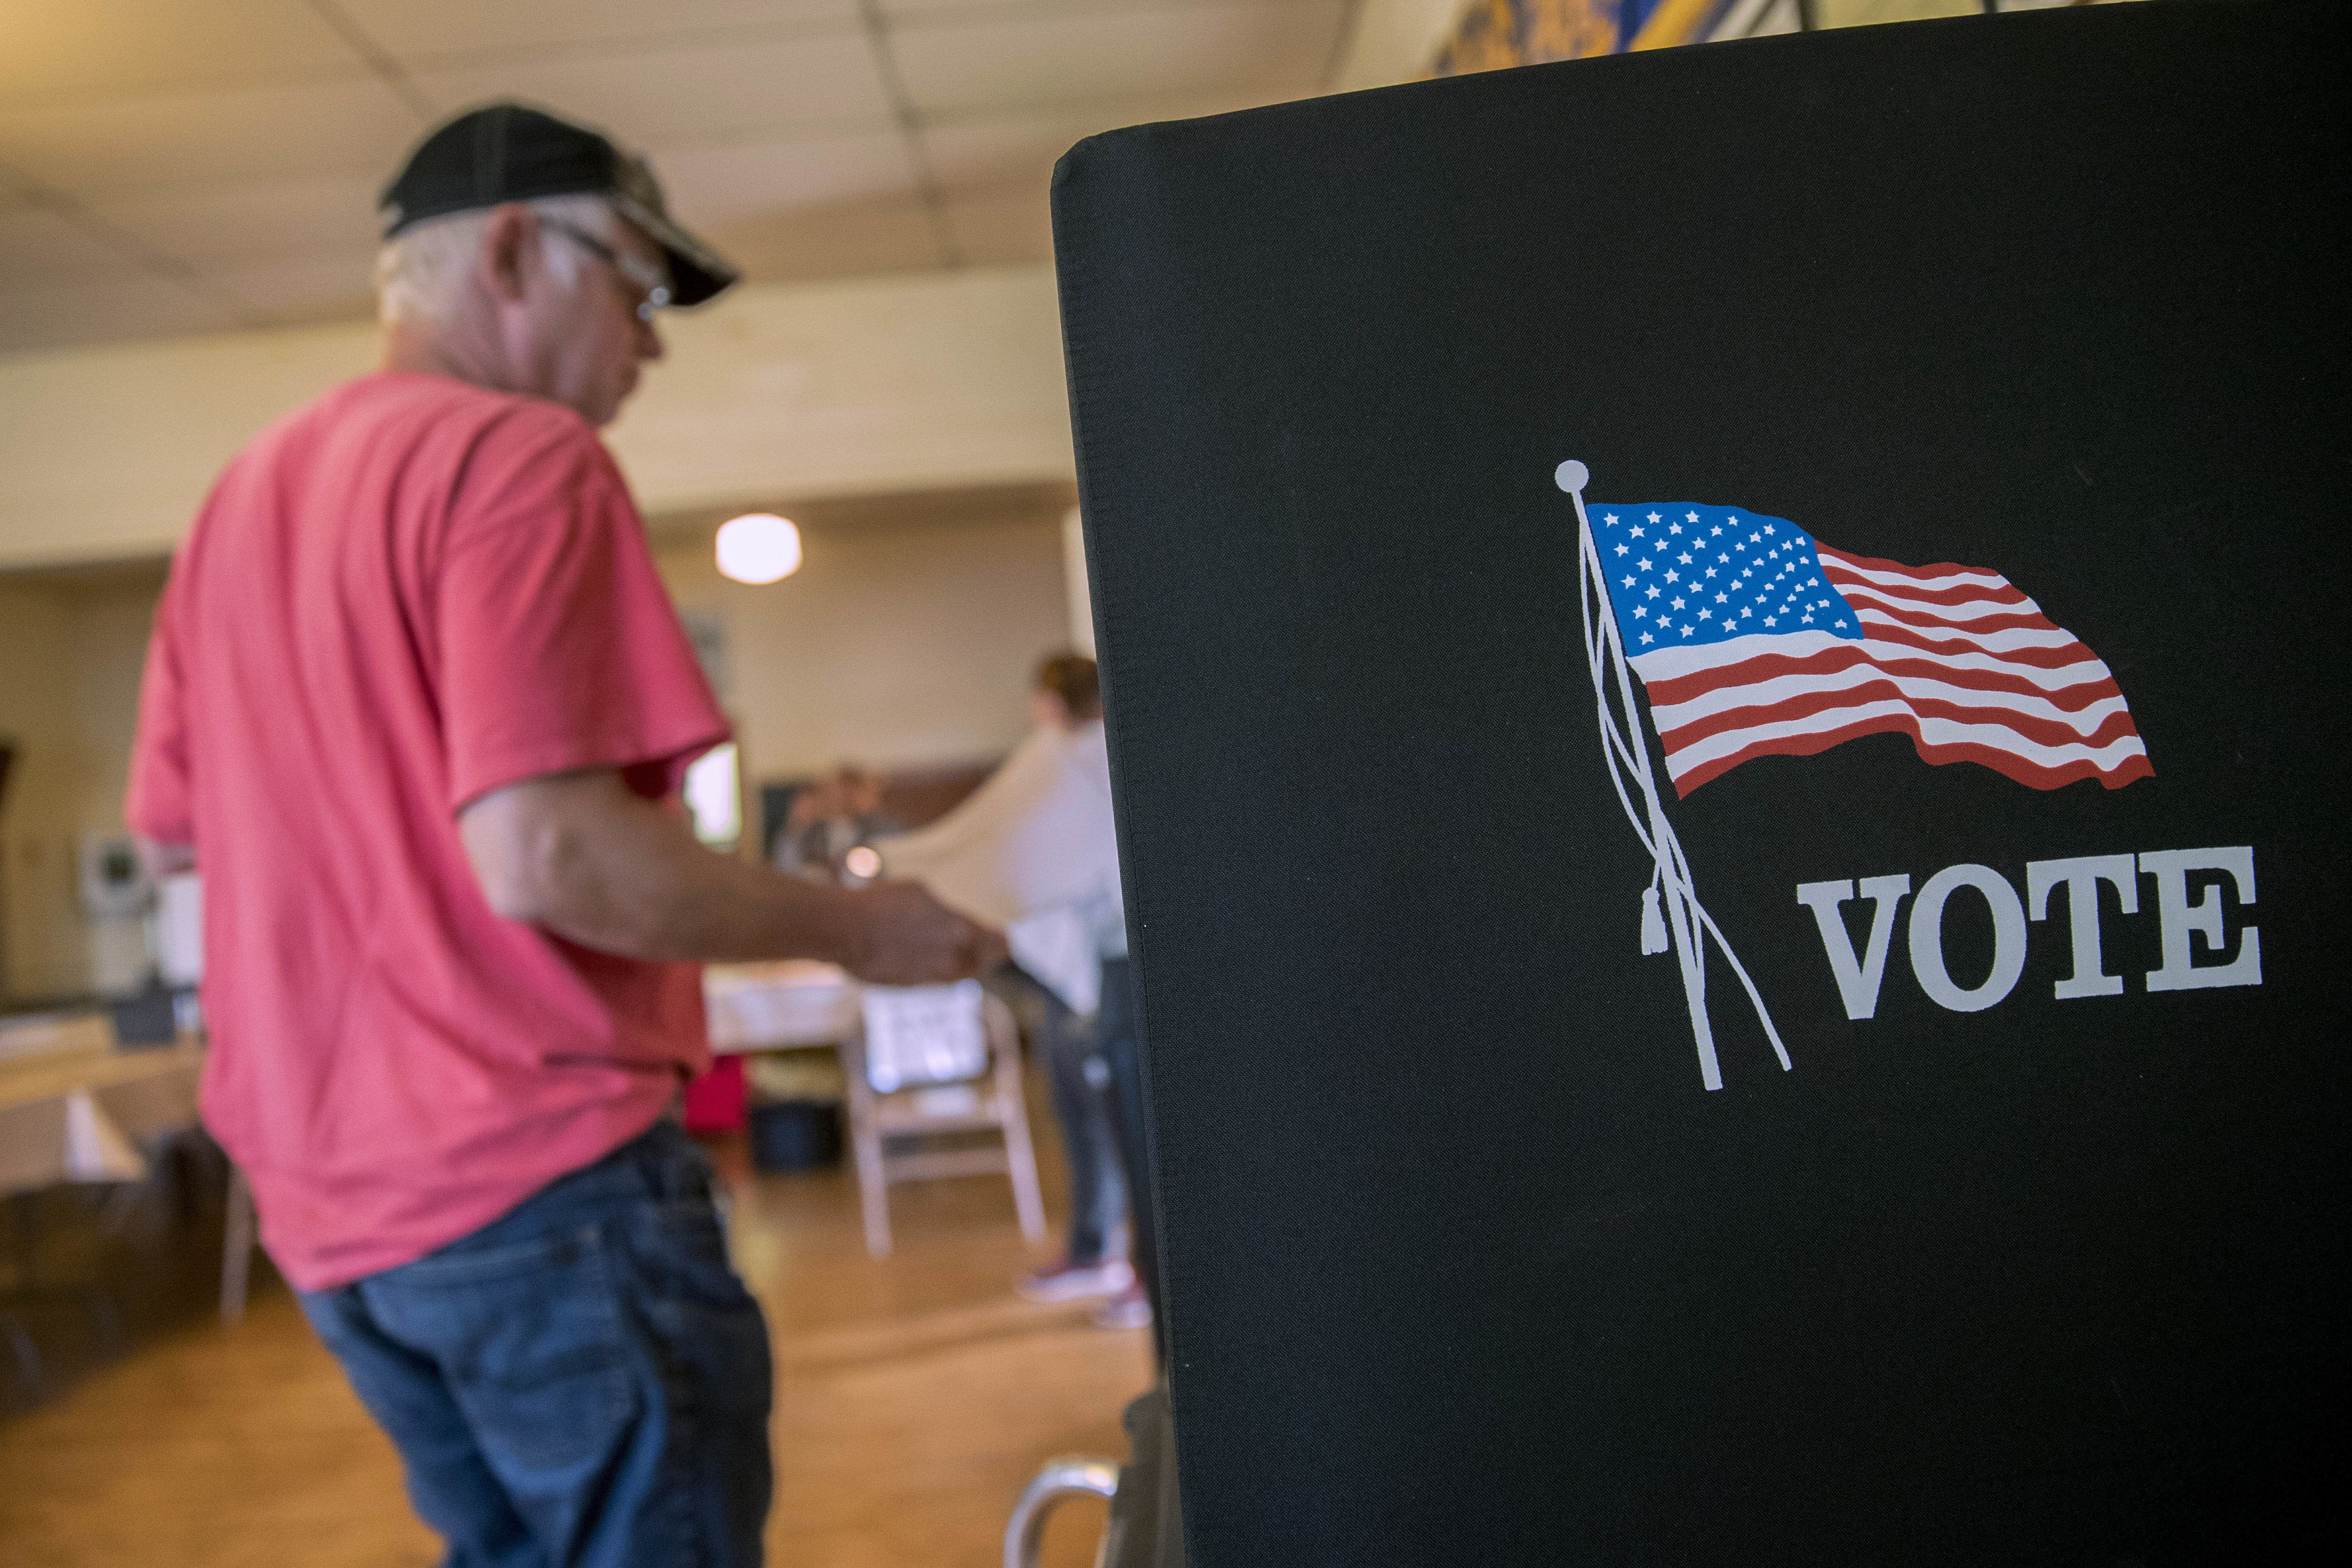 A voter arrives at a booth to fill out ballot at a polling location during the primary election in Lebanon Church, Virginia, U.S., on Tuesday, June 12, 2018. In the Shenandoah Valley's 6th Congressional district, four Democrats are running in the primary for the open seat being vacated by retiring Republican Bob Goodlatte. Photographer: Andrew Harrer/Bloomberg via Getty Images